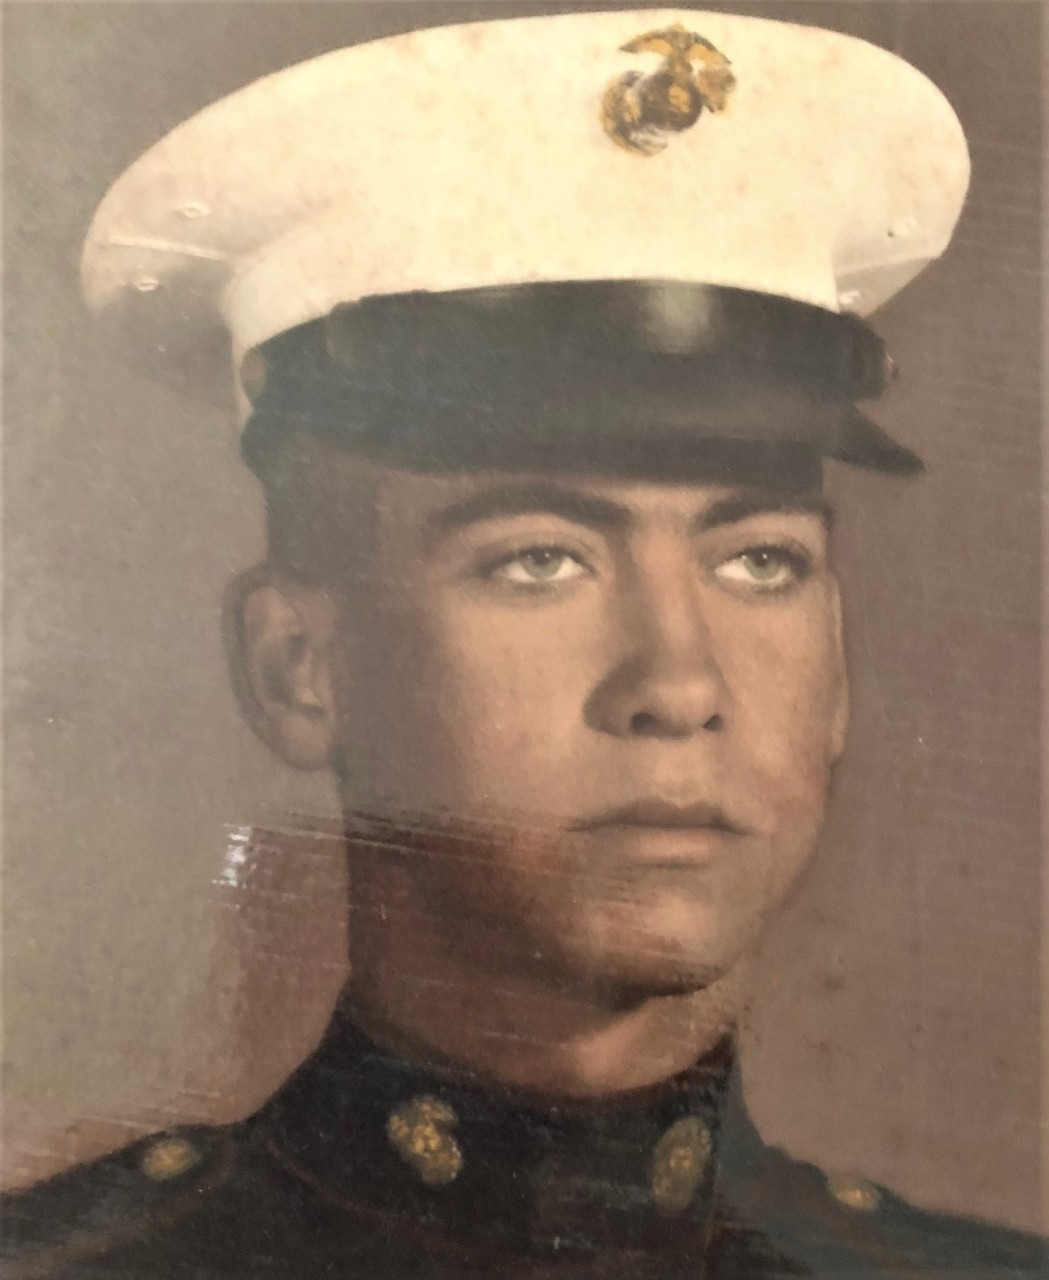 Dennis Demoralas, Stevenson's uncle, graduated from San Benito High School in 1969 and went into the Marines to serve one tour in Vietnam. Stevenson says he suffered from PTSD and possibly died of cancer due to exposure to Agent Orange. Photo courtesy of Shari Stevenson.